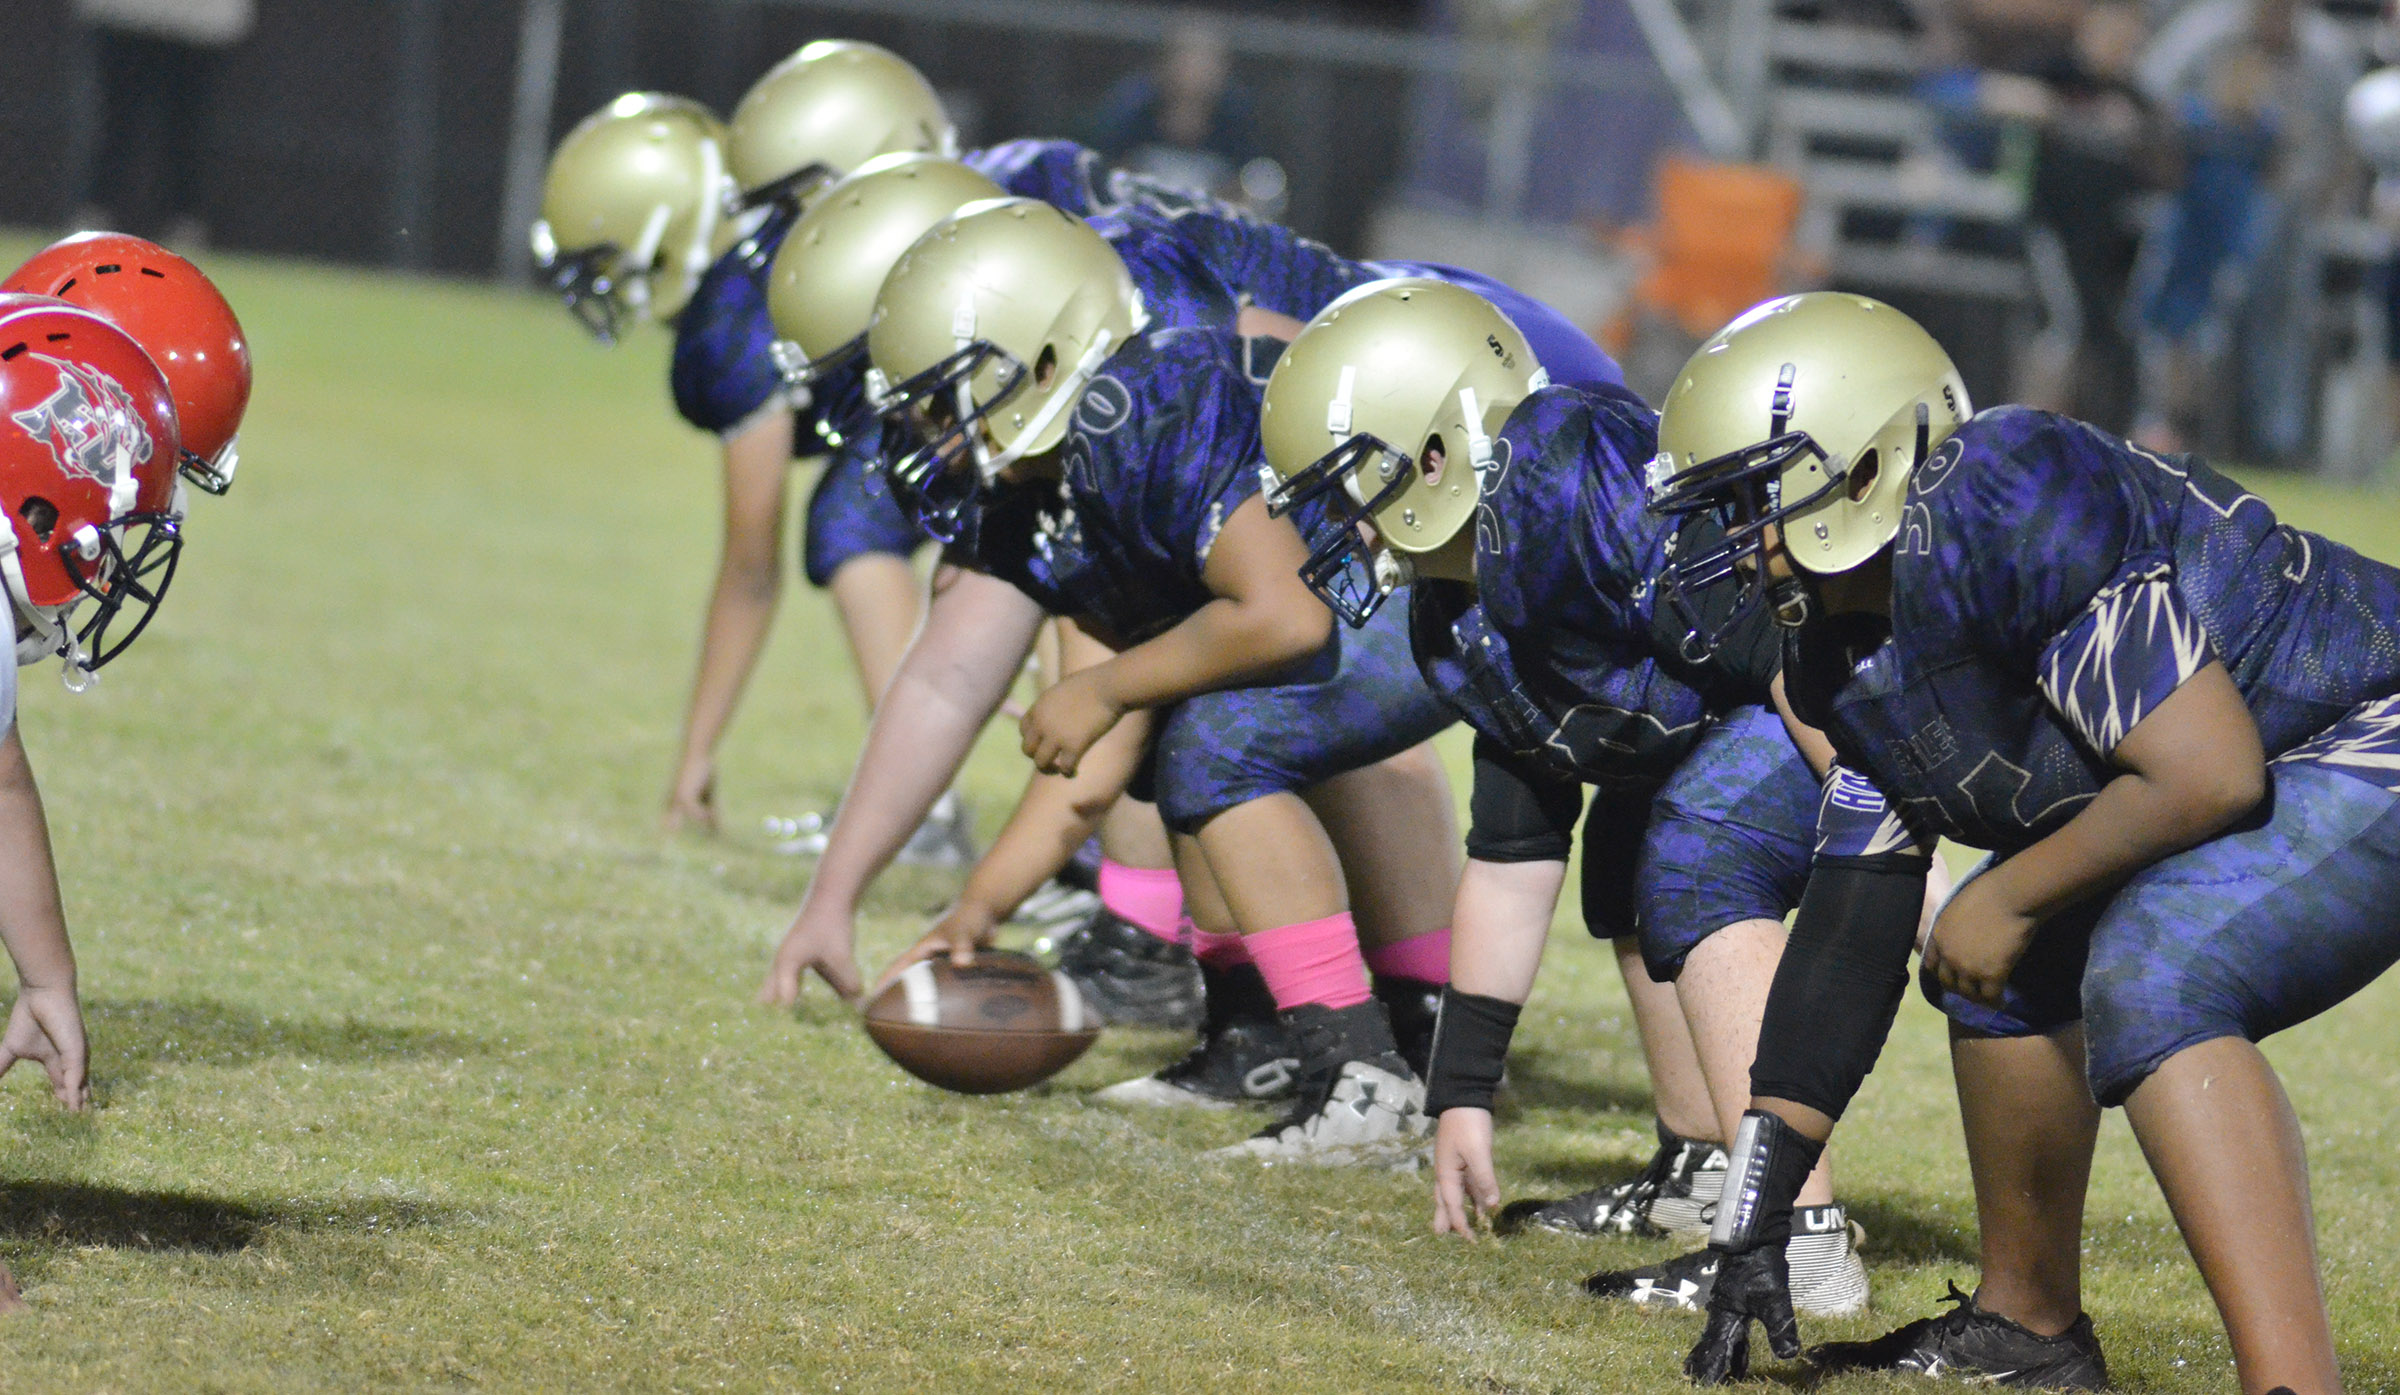 CMS offensive players get ready to tackle.